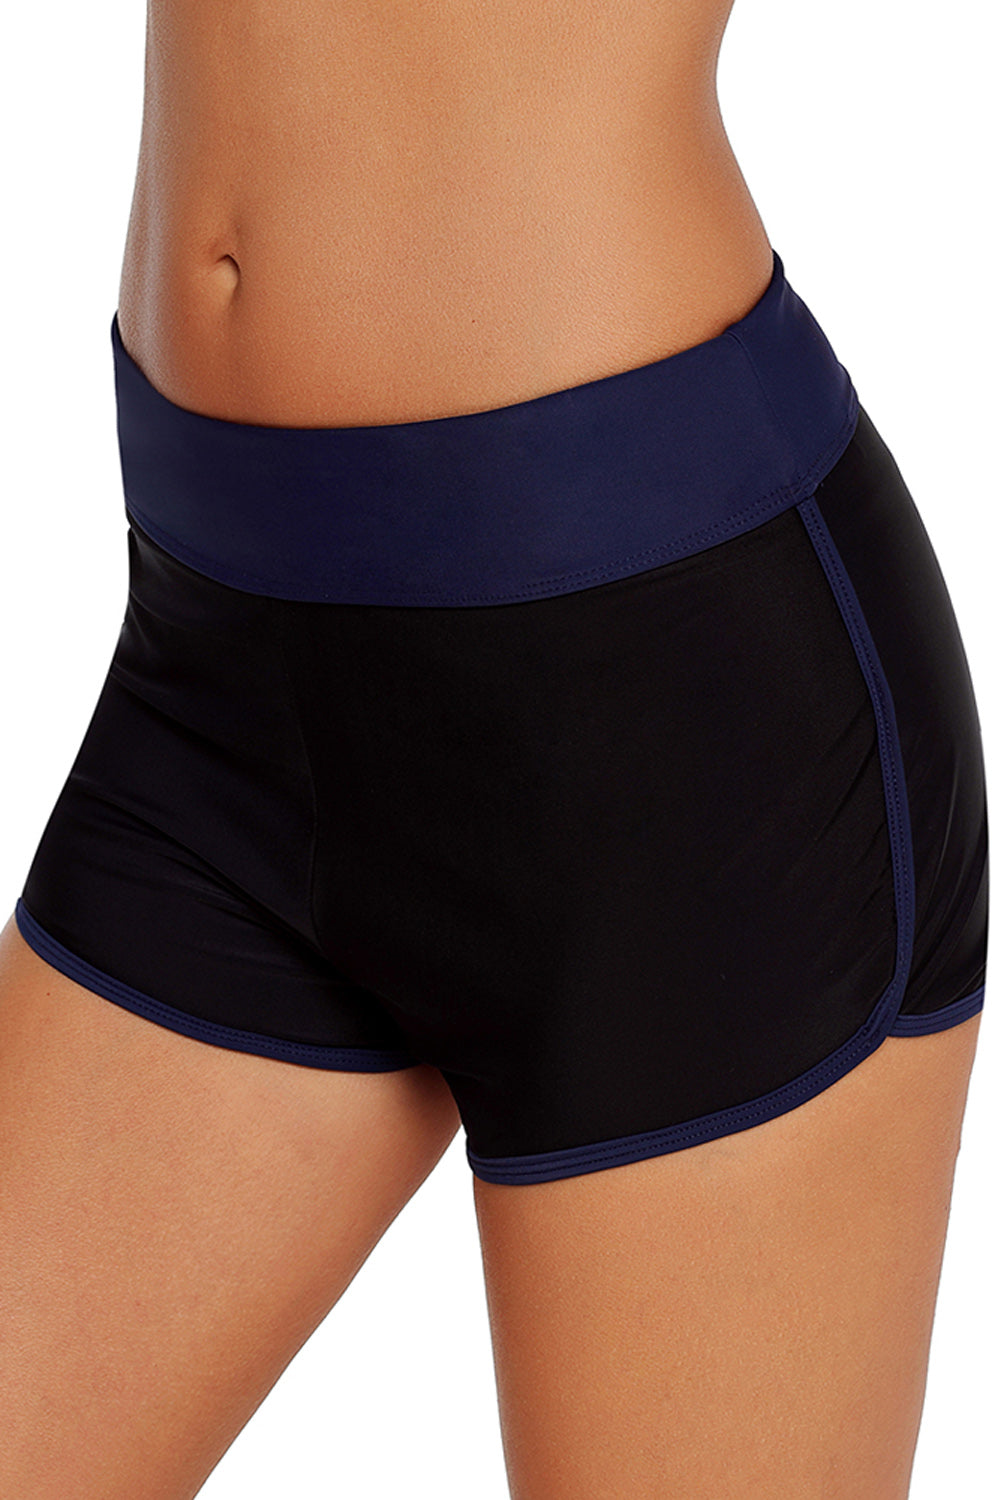 Contrast Navy Blue Trim Swim Board Shorts